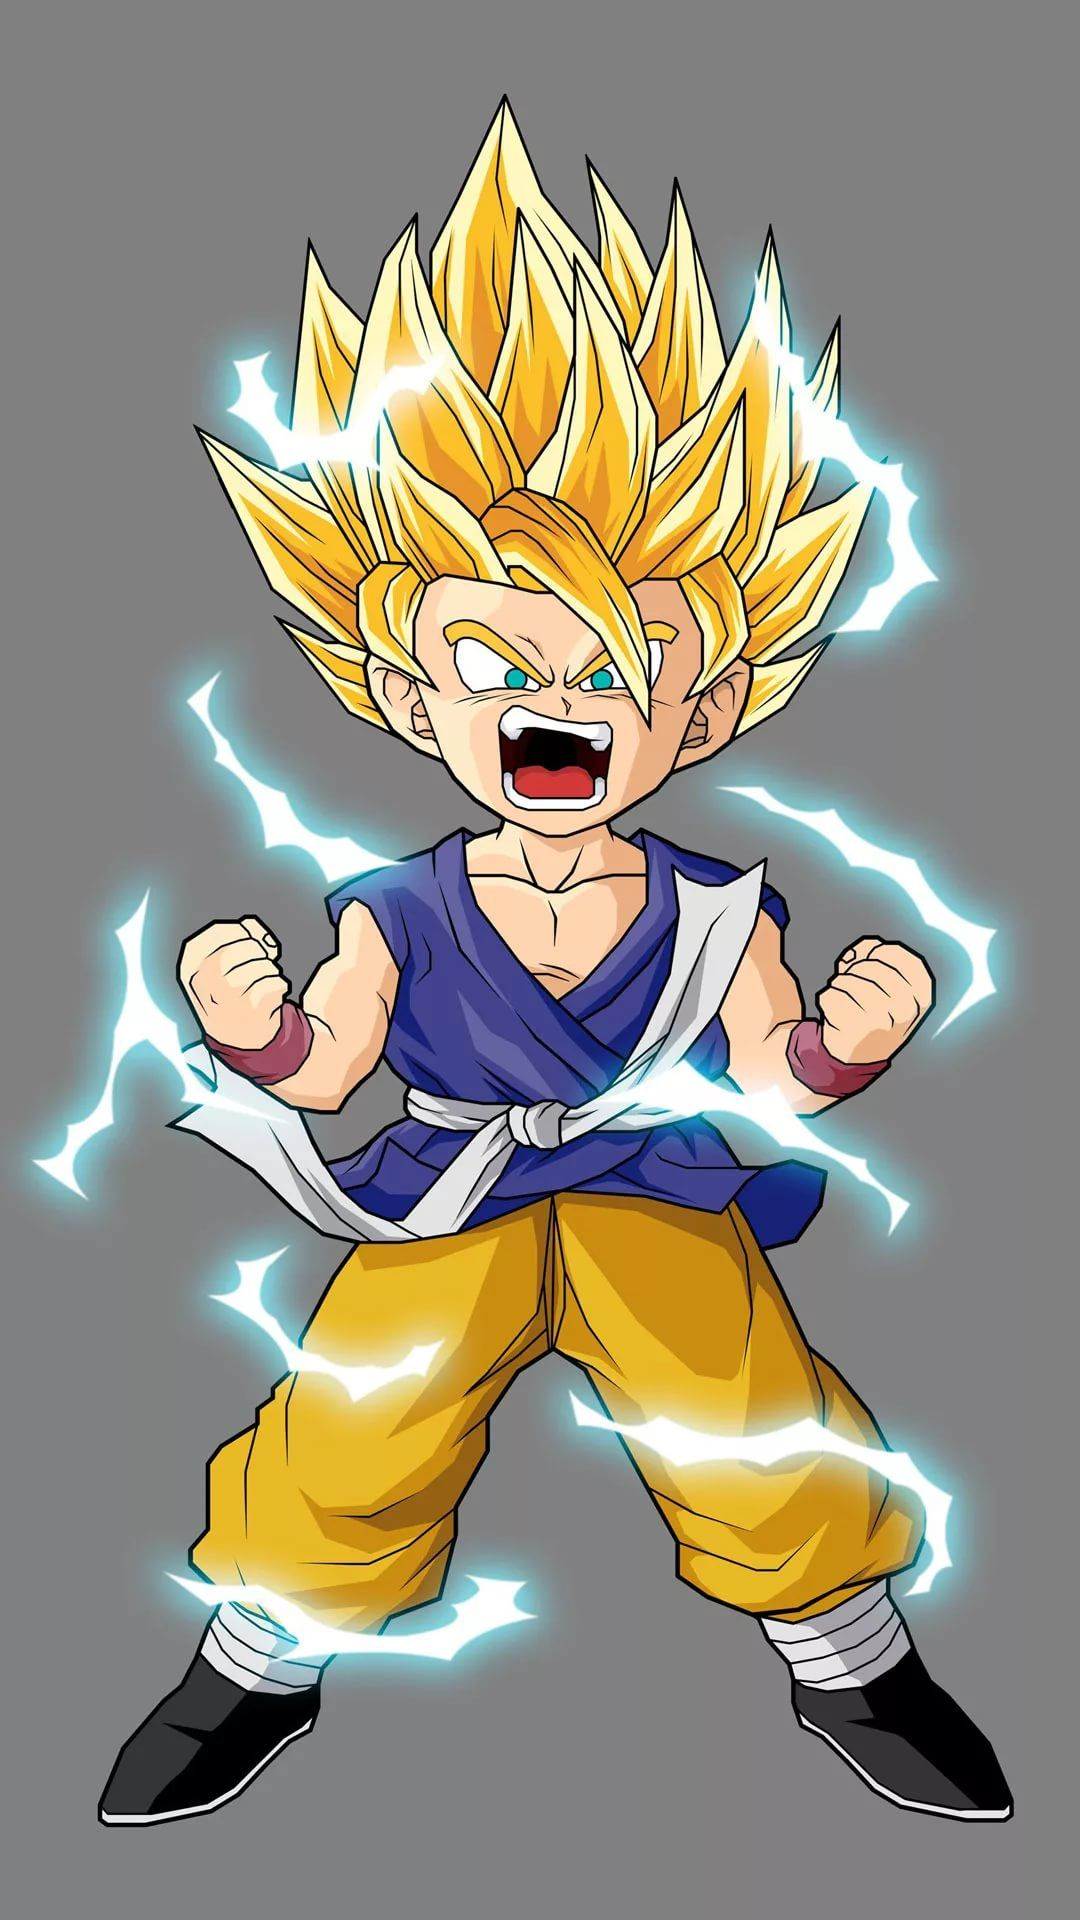 Gohan screen wallpaper